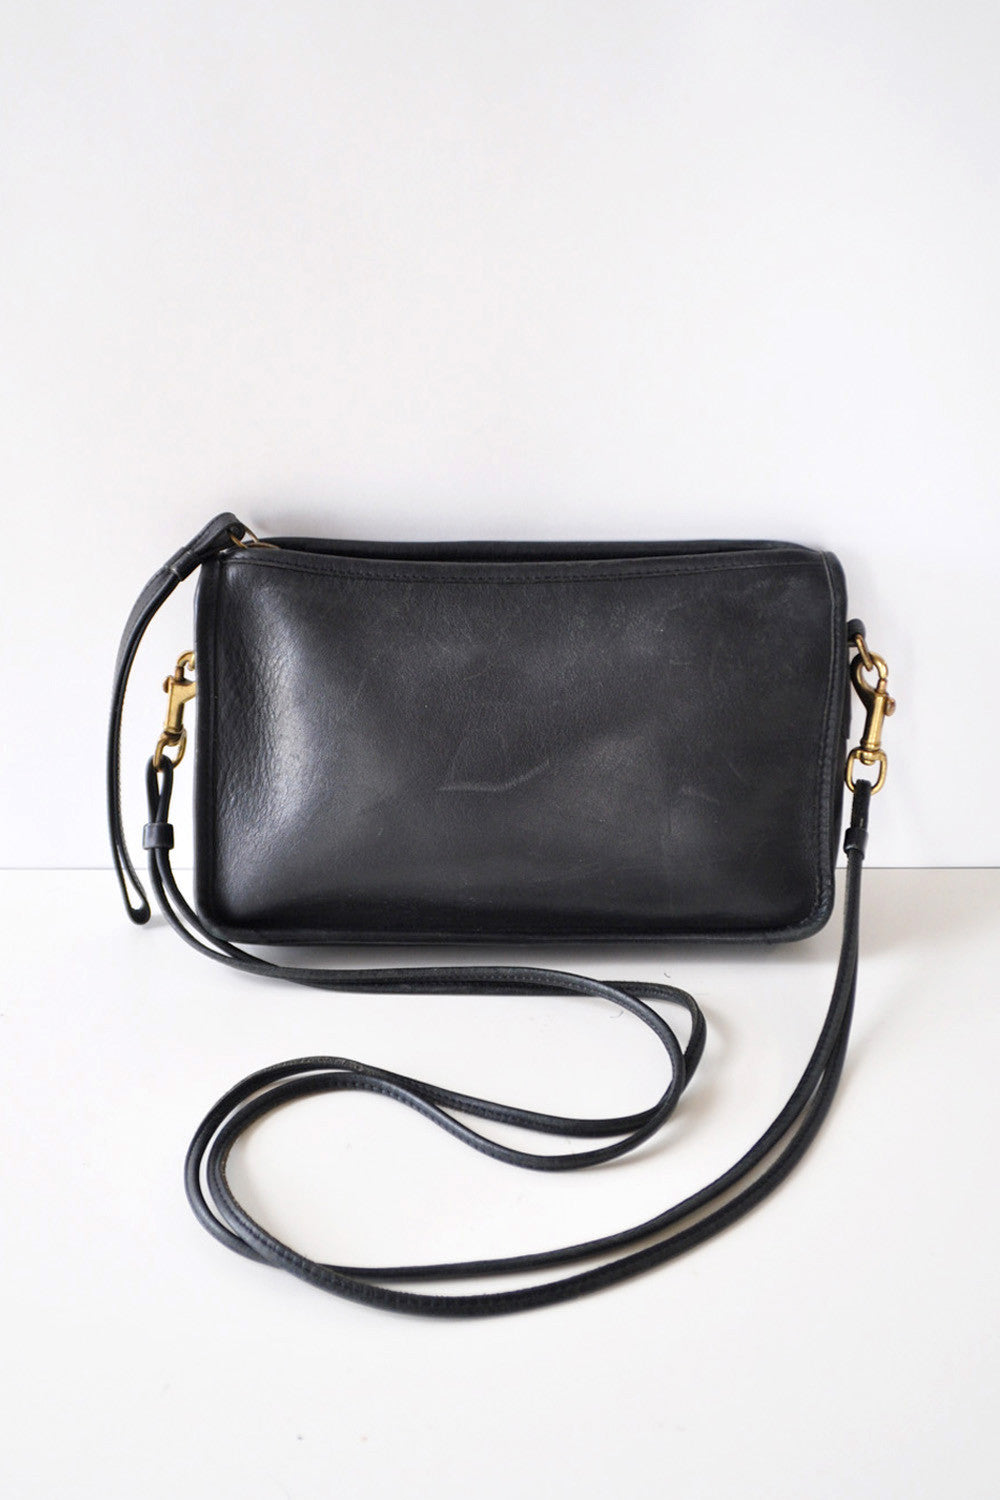 Coach Basic Crossbody Zip Bag